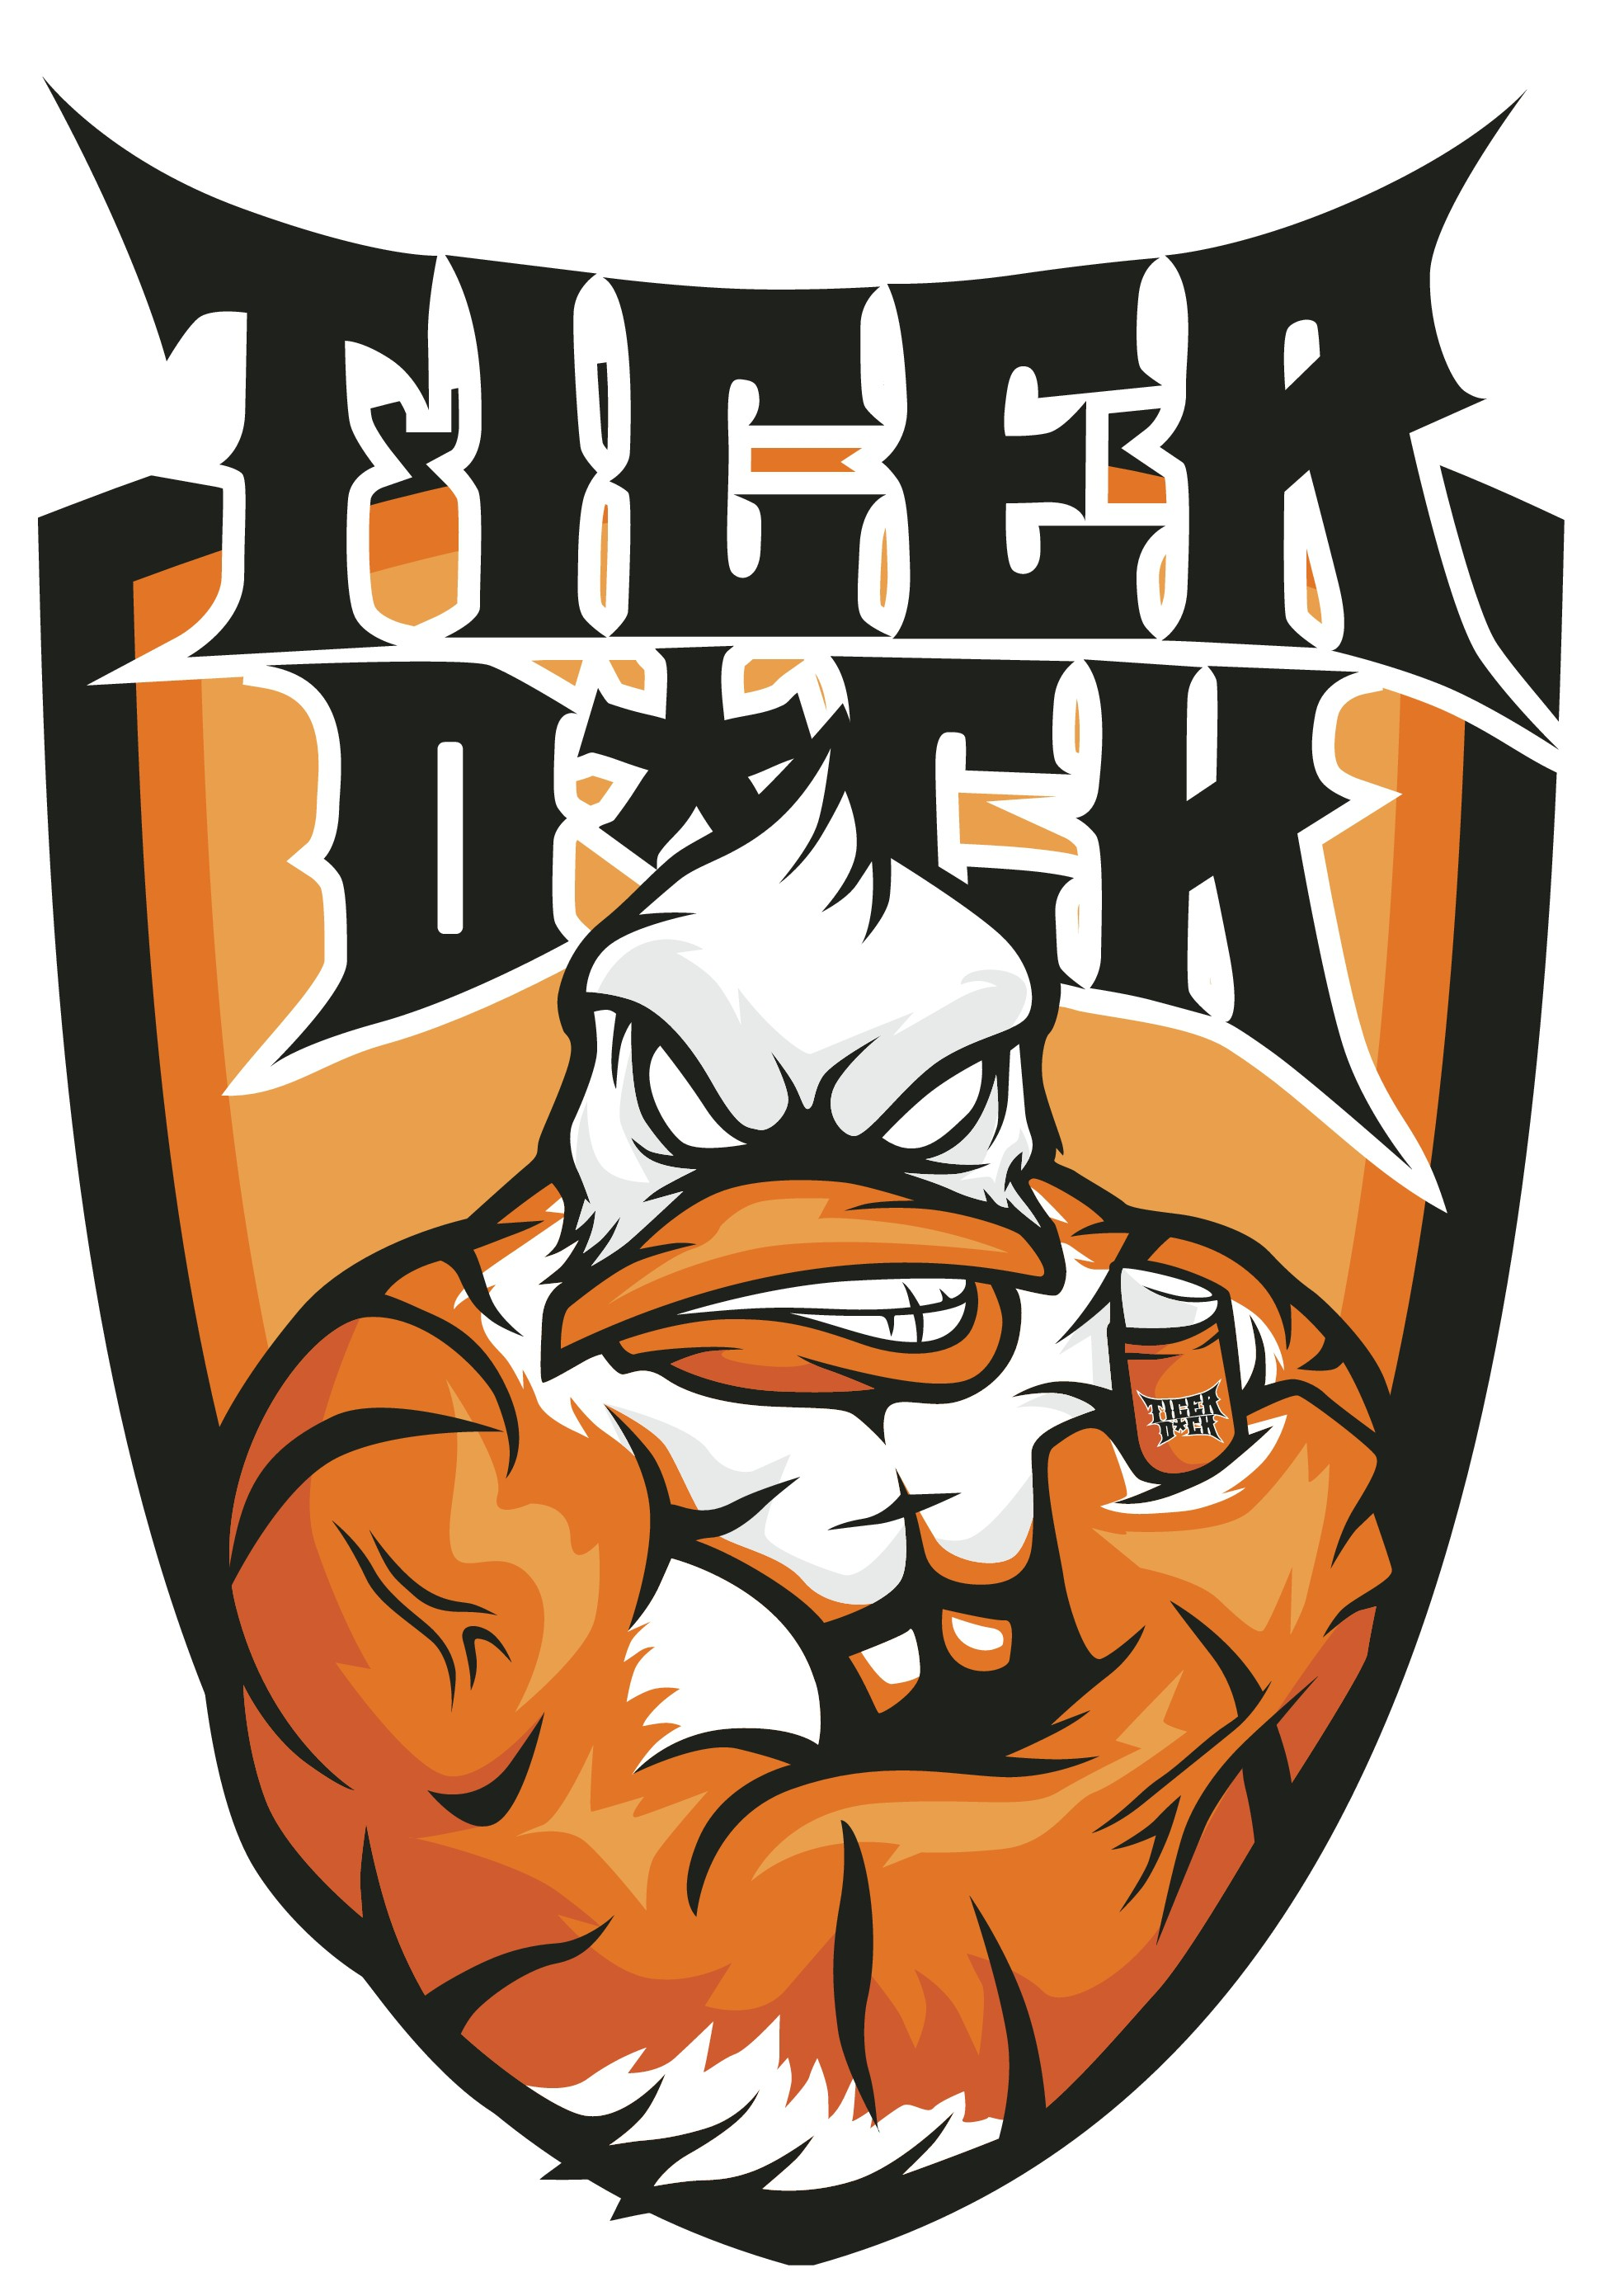 TigerDuck - create a muscular new animal for my mans lipbalm brand